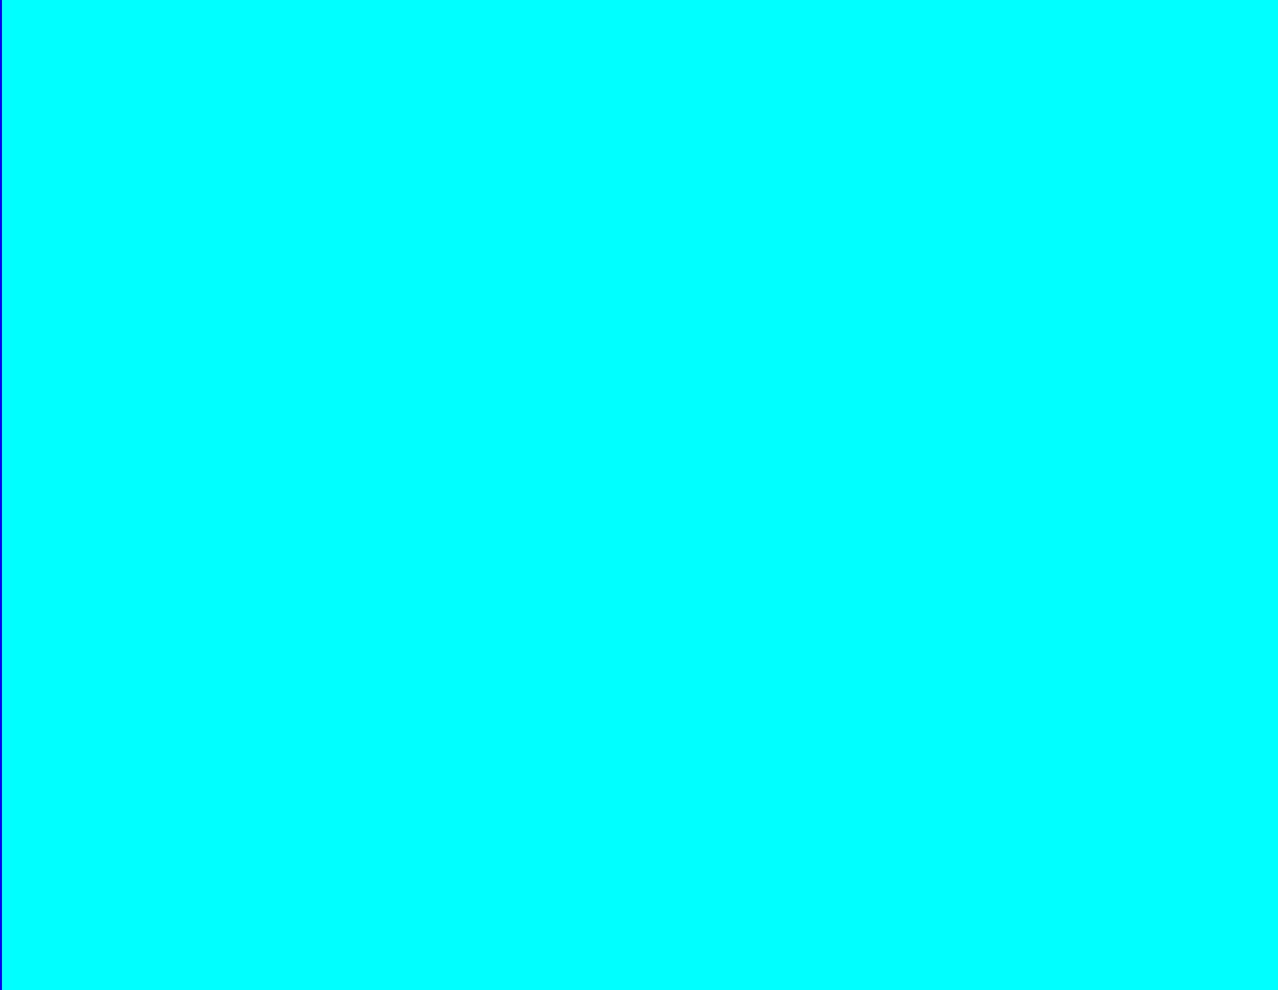 Cyan rectangle